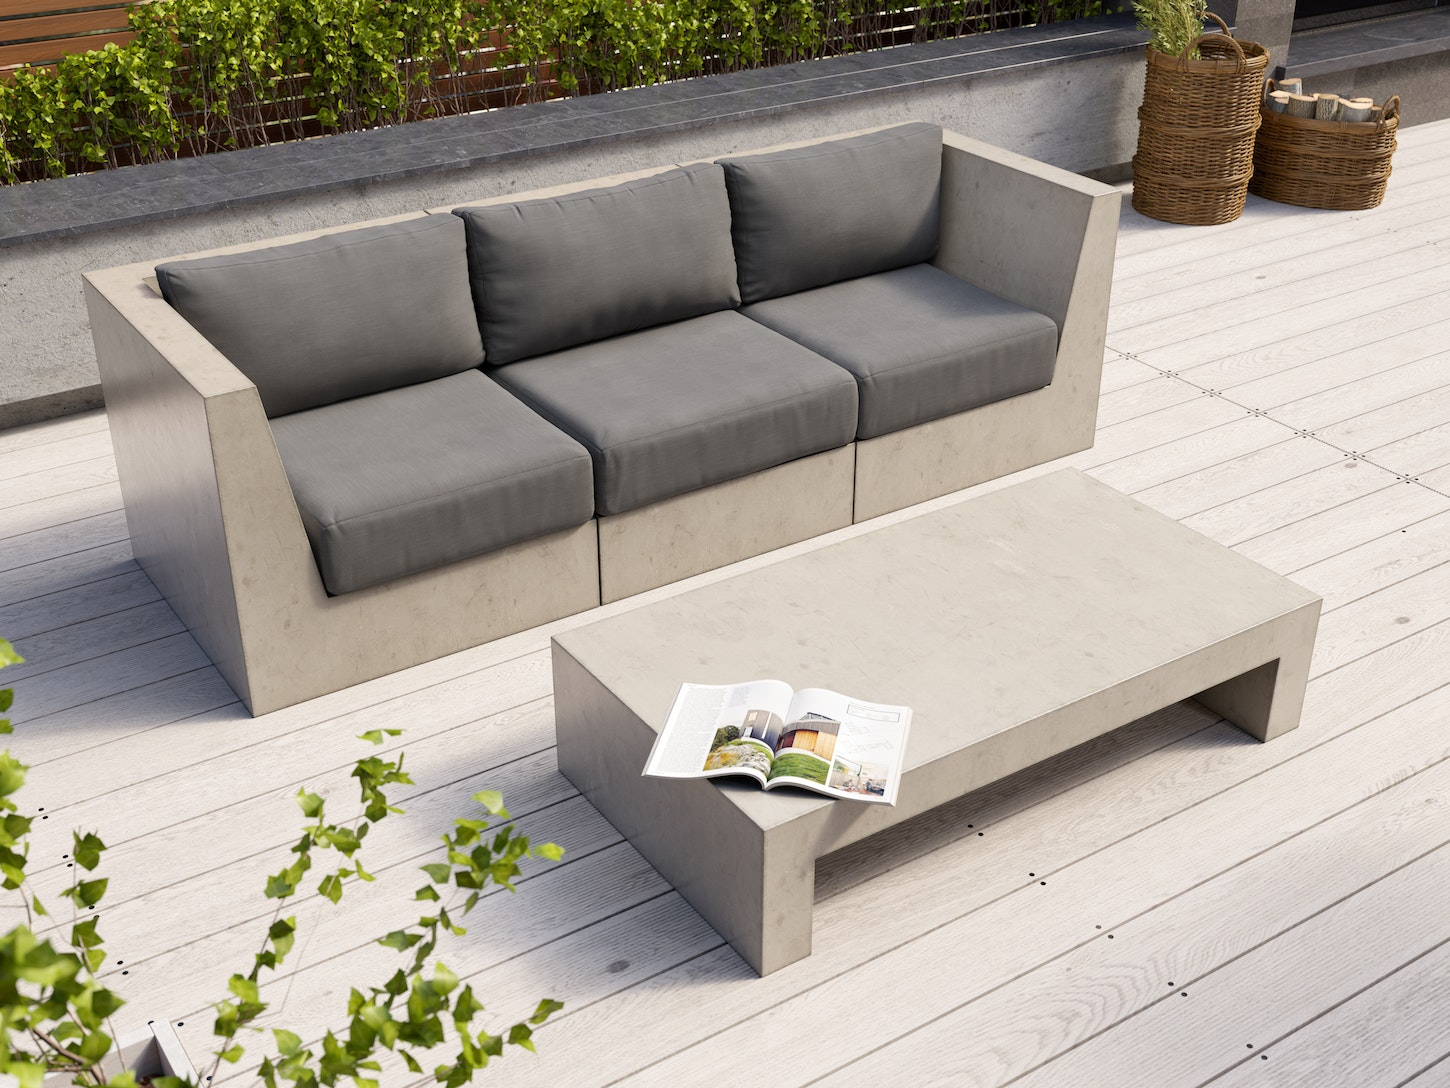 Modulo concrete sofa set lounge sets outdoor furniture home outdoor living trade tested